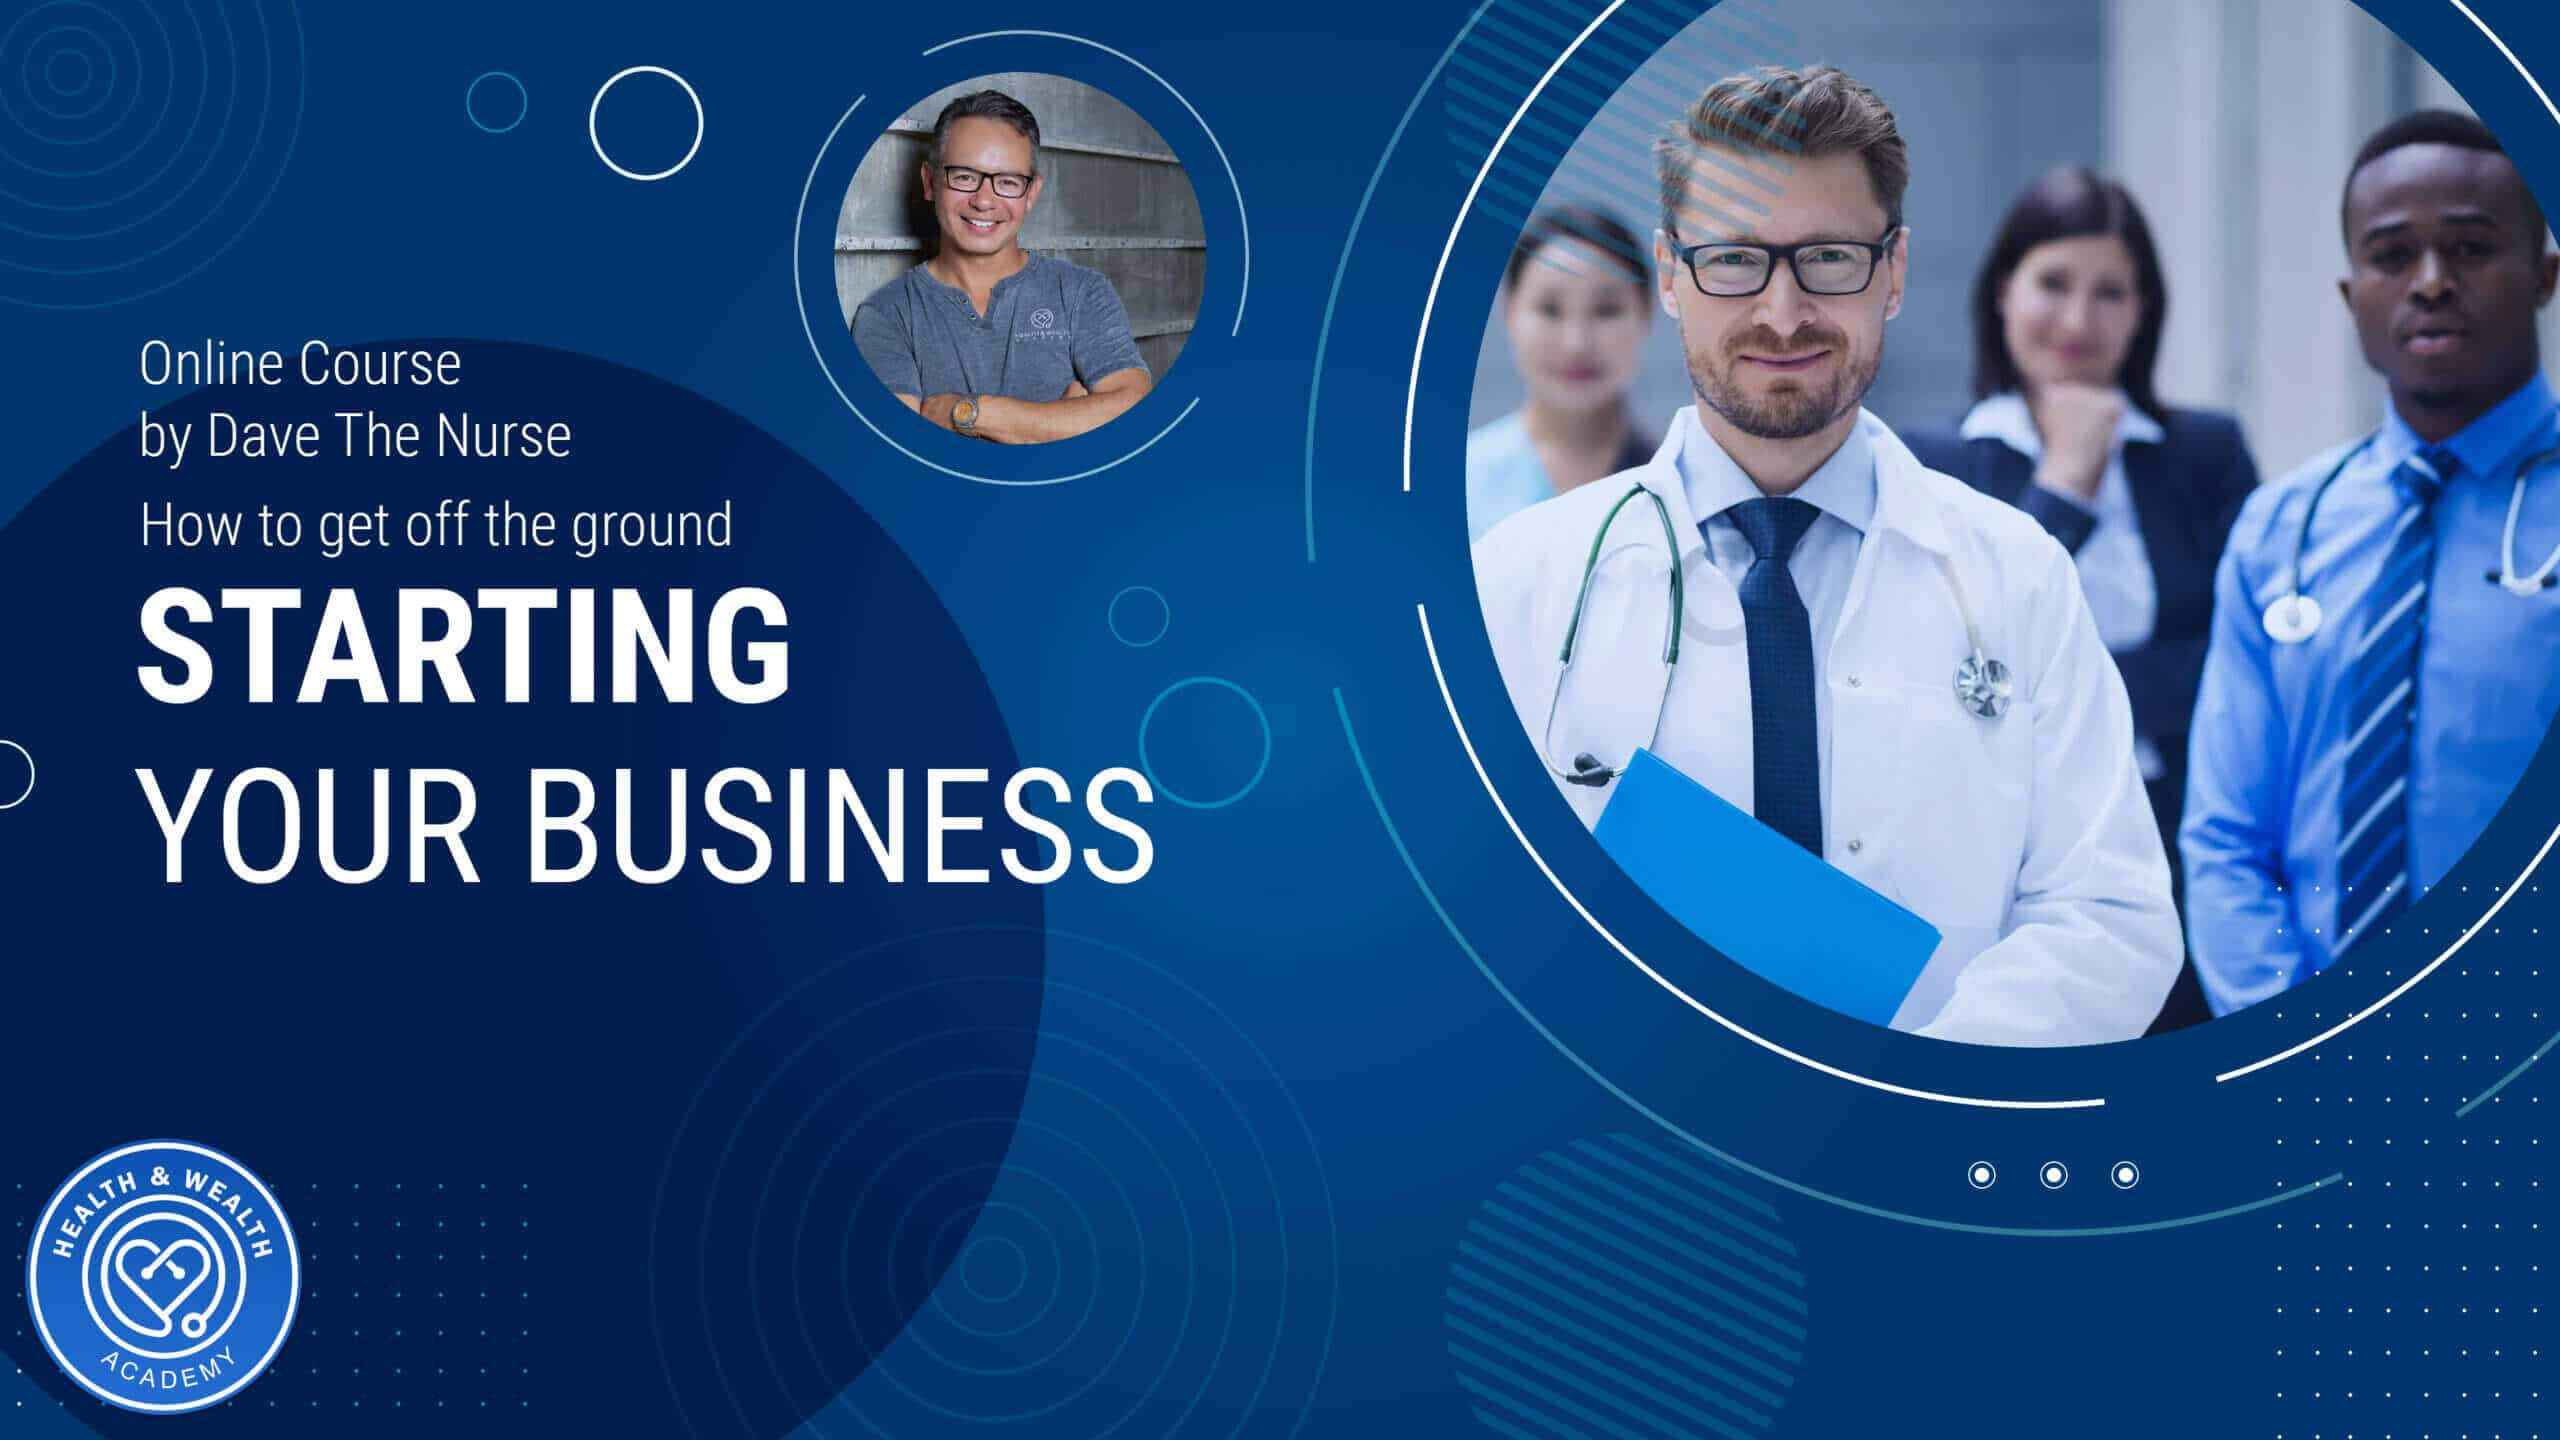 Become a Home Nurse Entrepreneur with the New Health & Wealth Academy Online Learning System